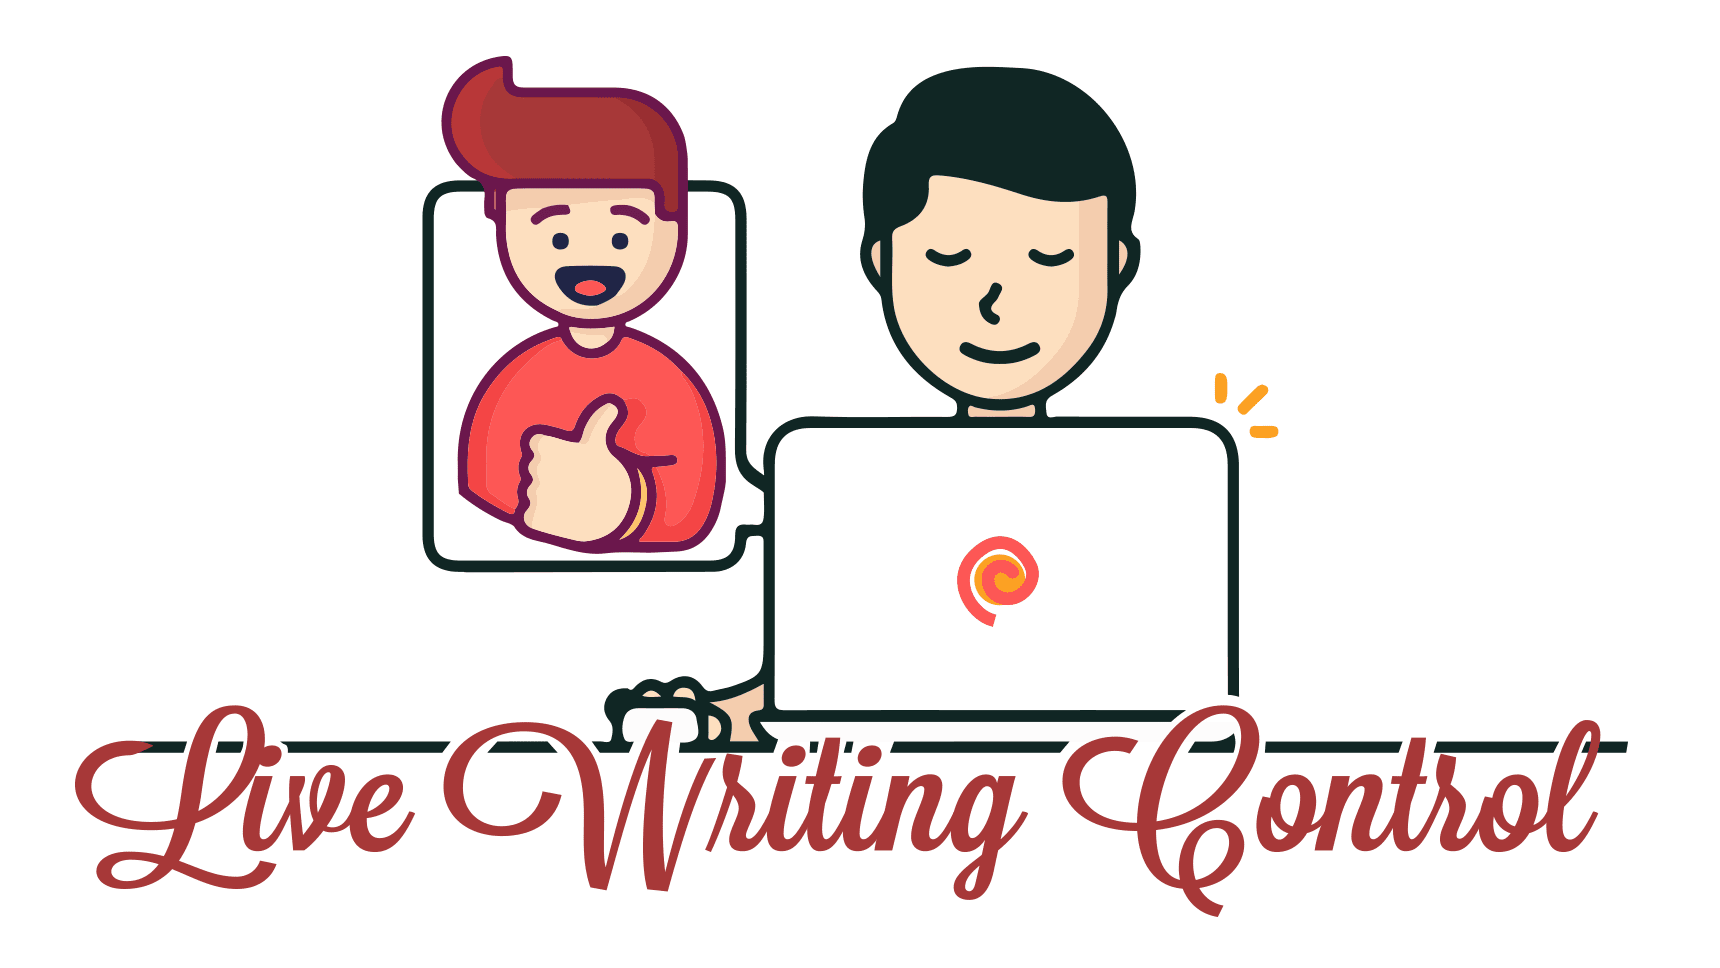 How Live Writing Control works?